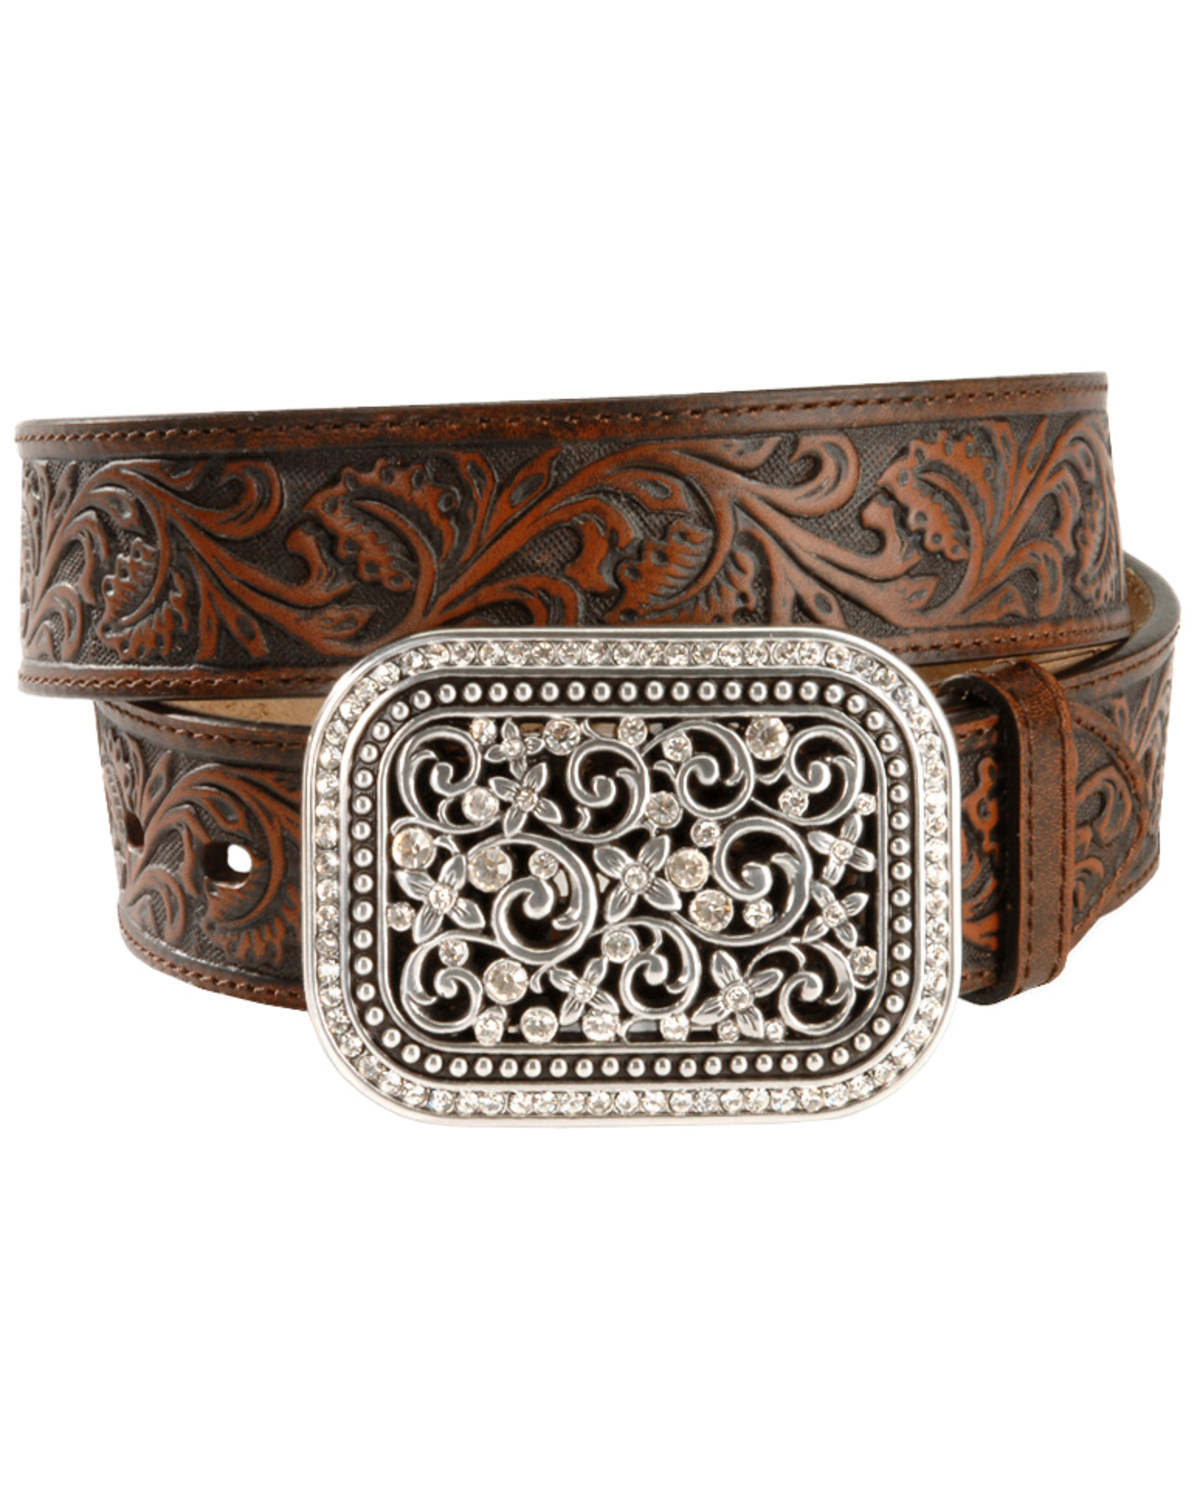 Ariat Women's Tooled Leather Belt | Boot Barn